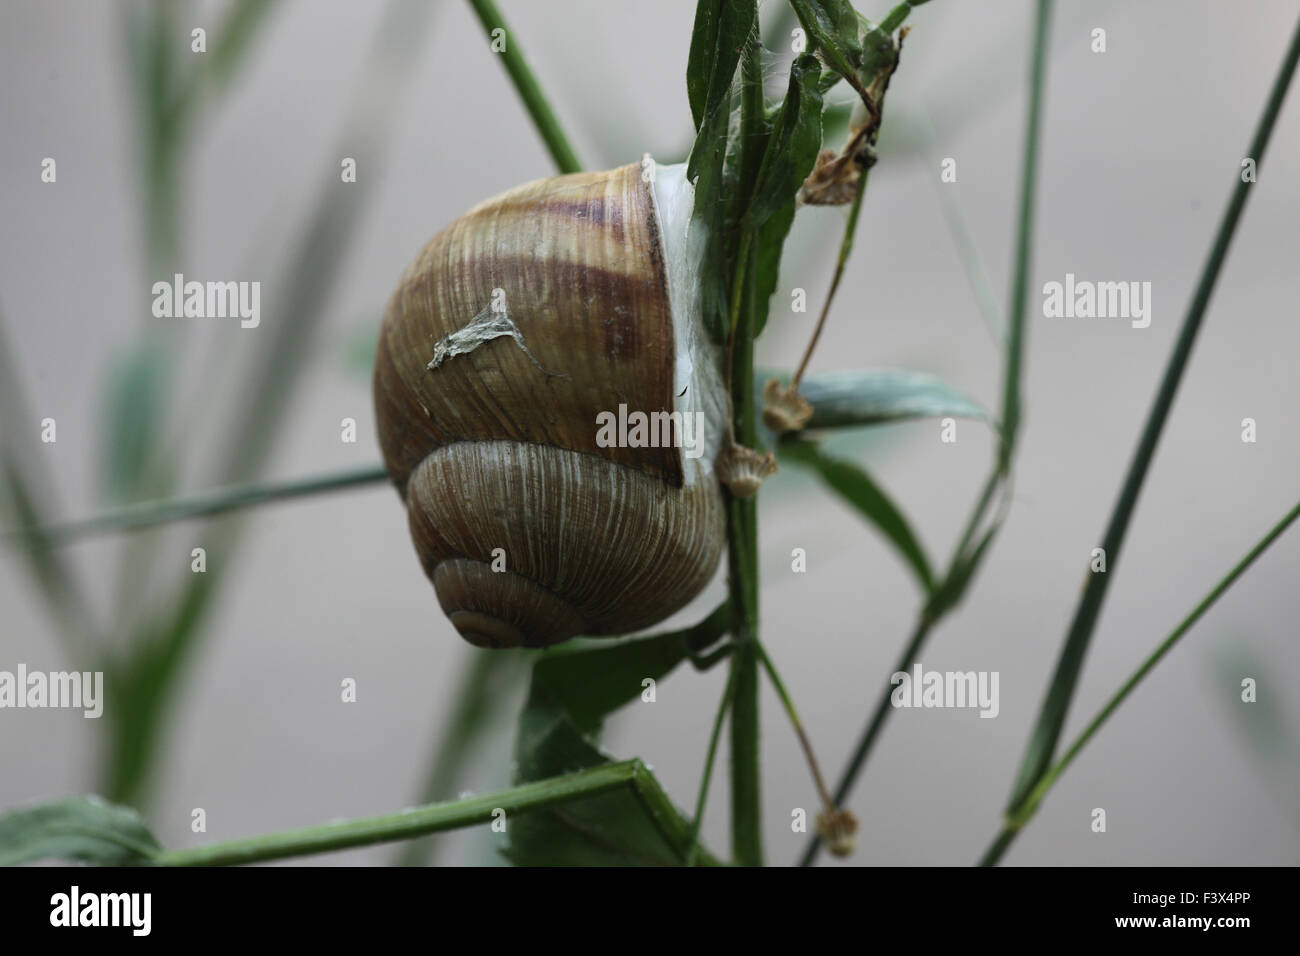 attached to plant stem in dry weather and sealed to prevent dessication Hungary June 2015 - Stock Image